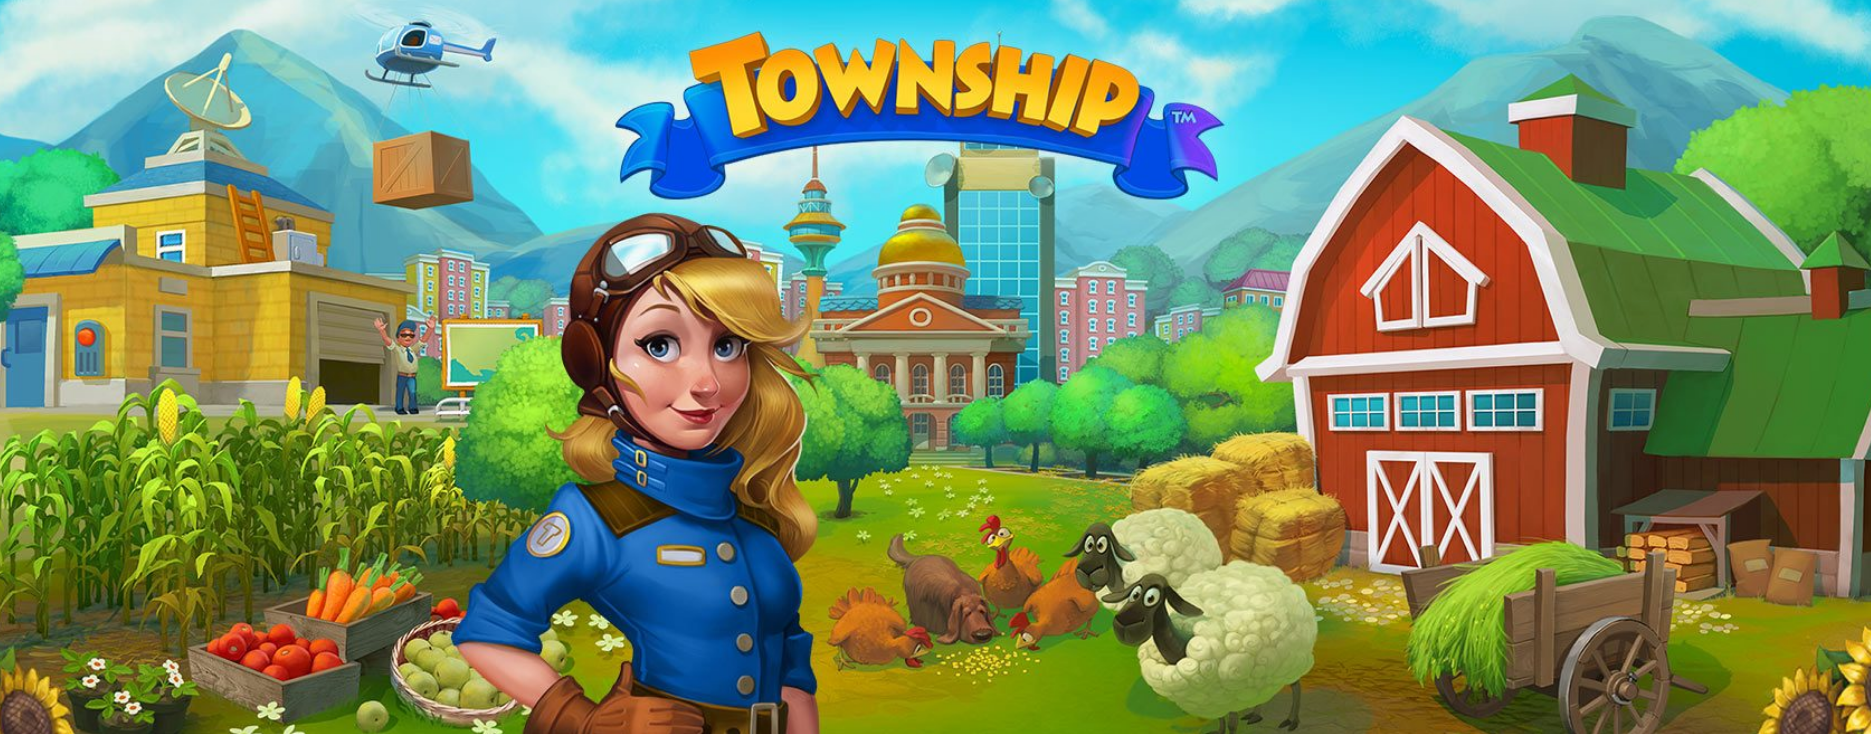 Township Walkthrough